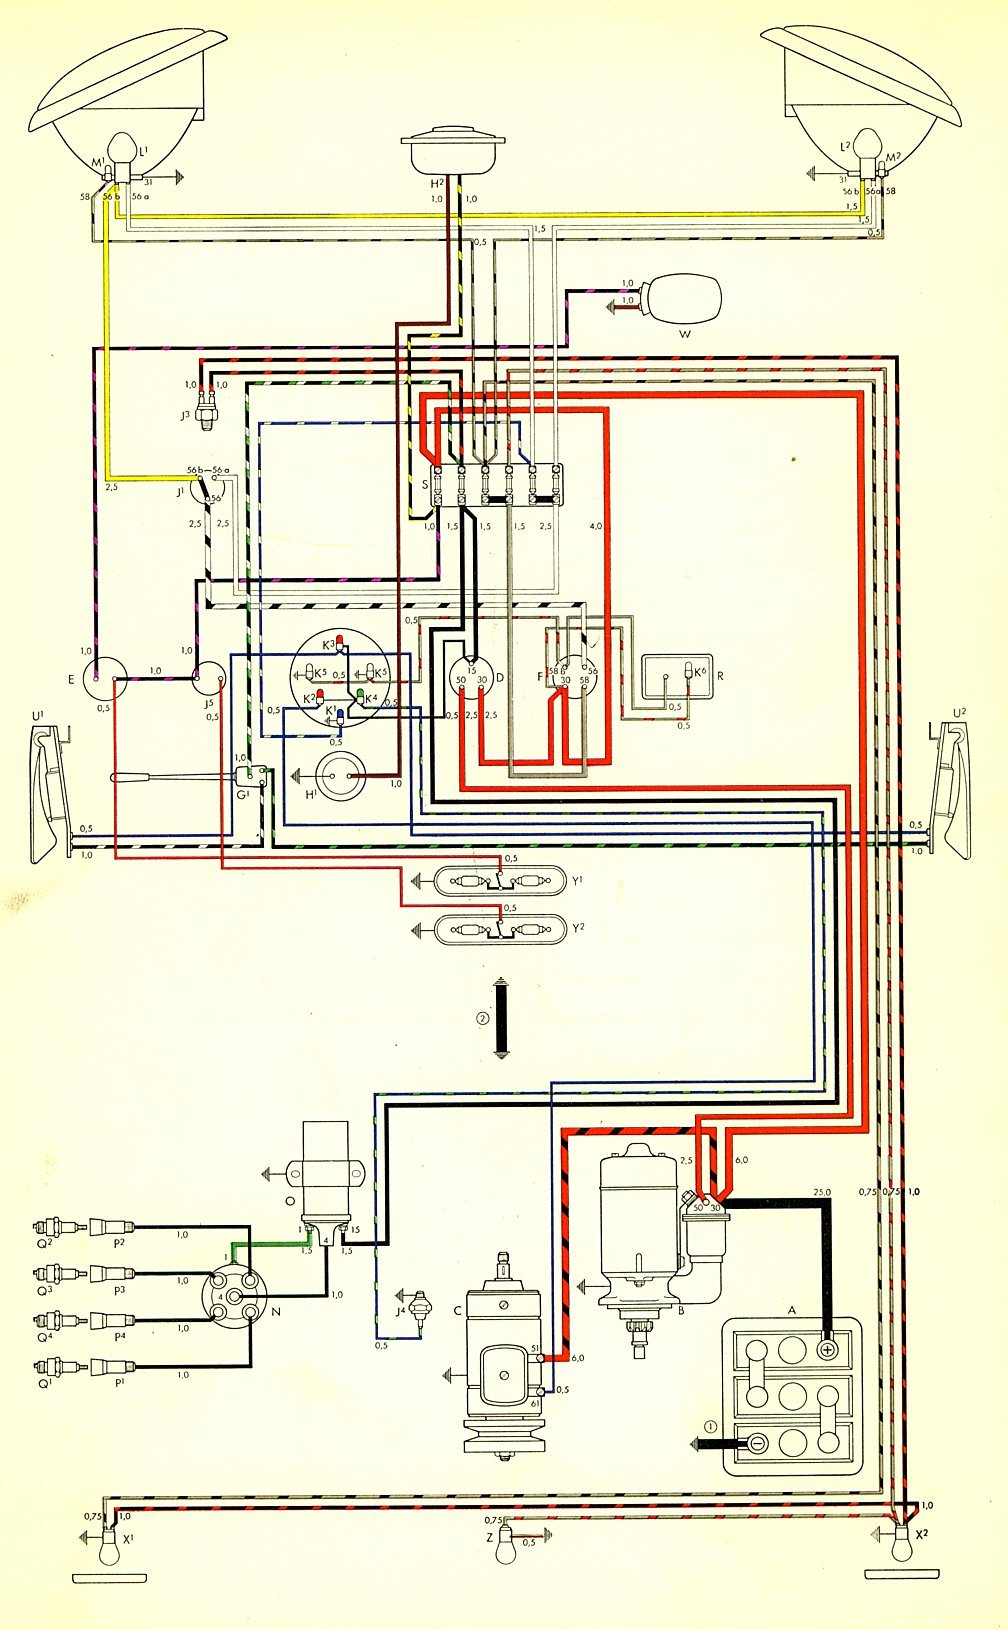 1963 Cj5 Wiring Schematic Control Diagram 1970 Jeep Thesamba Com Type 2 Diagrams Rh